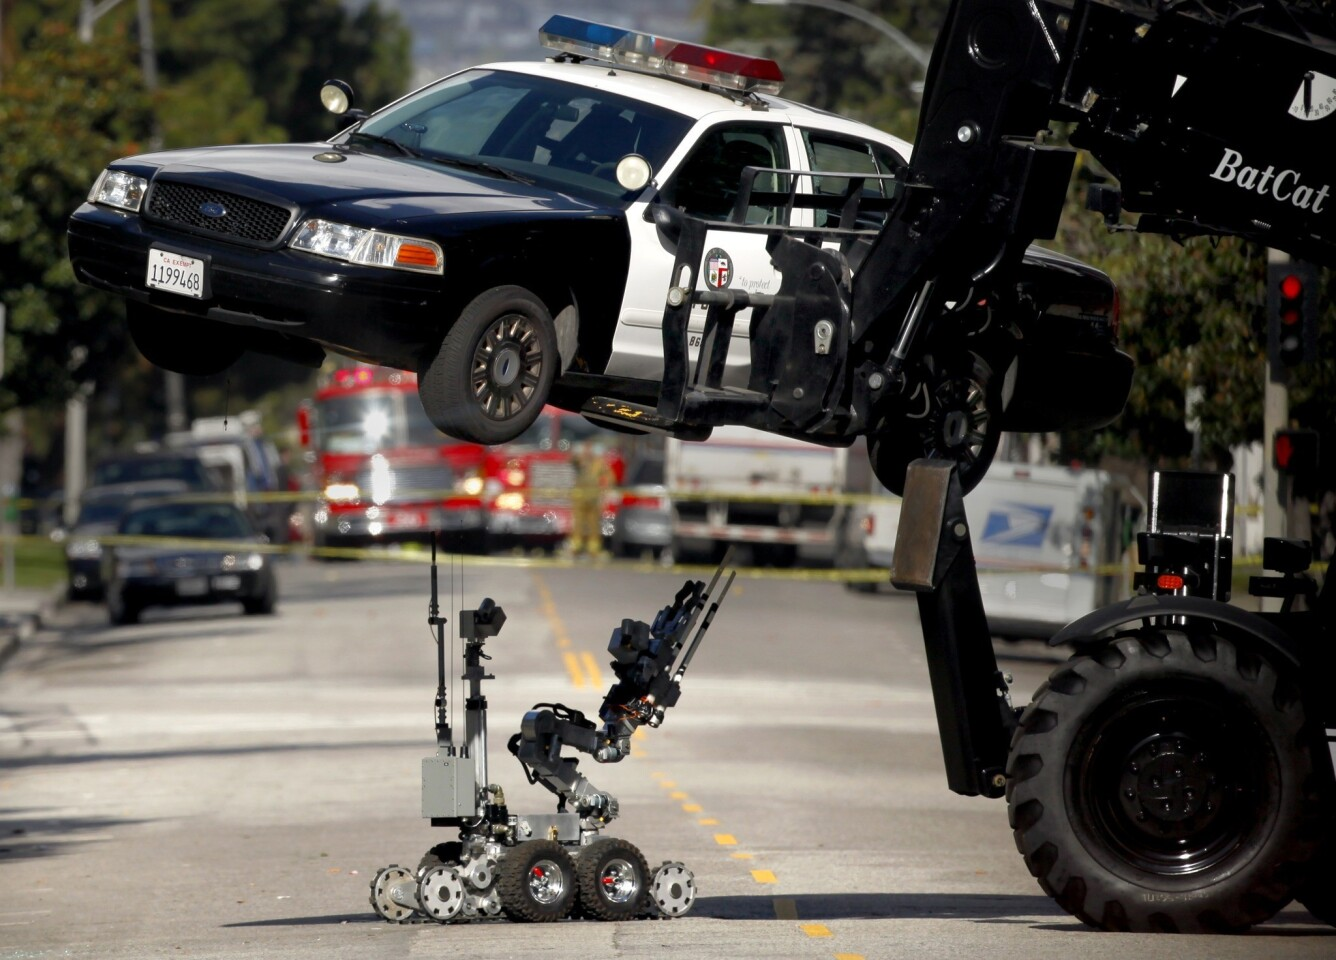 Los Angeles Police Department bomb squad members take a closer look at the underside of an LAPD patrol car with a robotic device after authorities received a call that a bomb had been planted in the vehicle on Harvard Boulevard near Wilshire Boulevard.